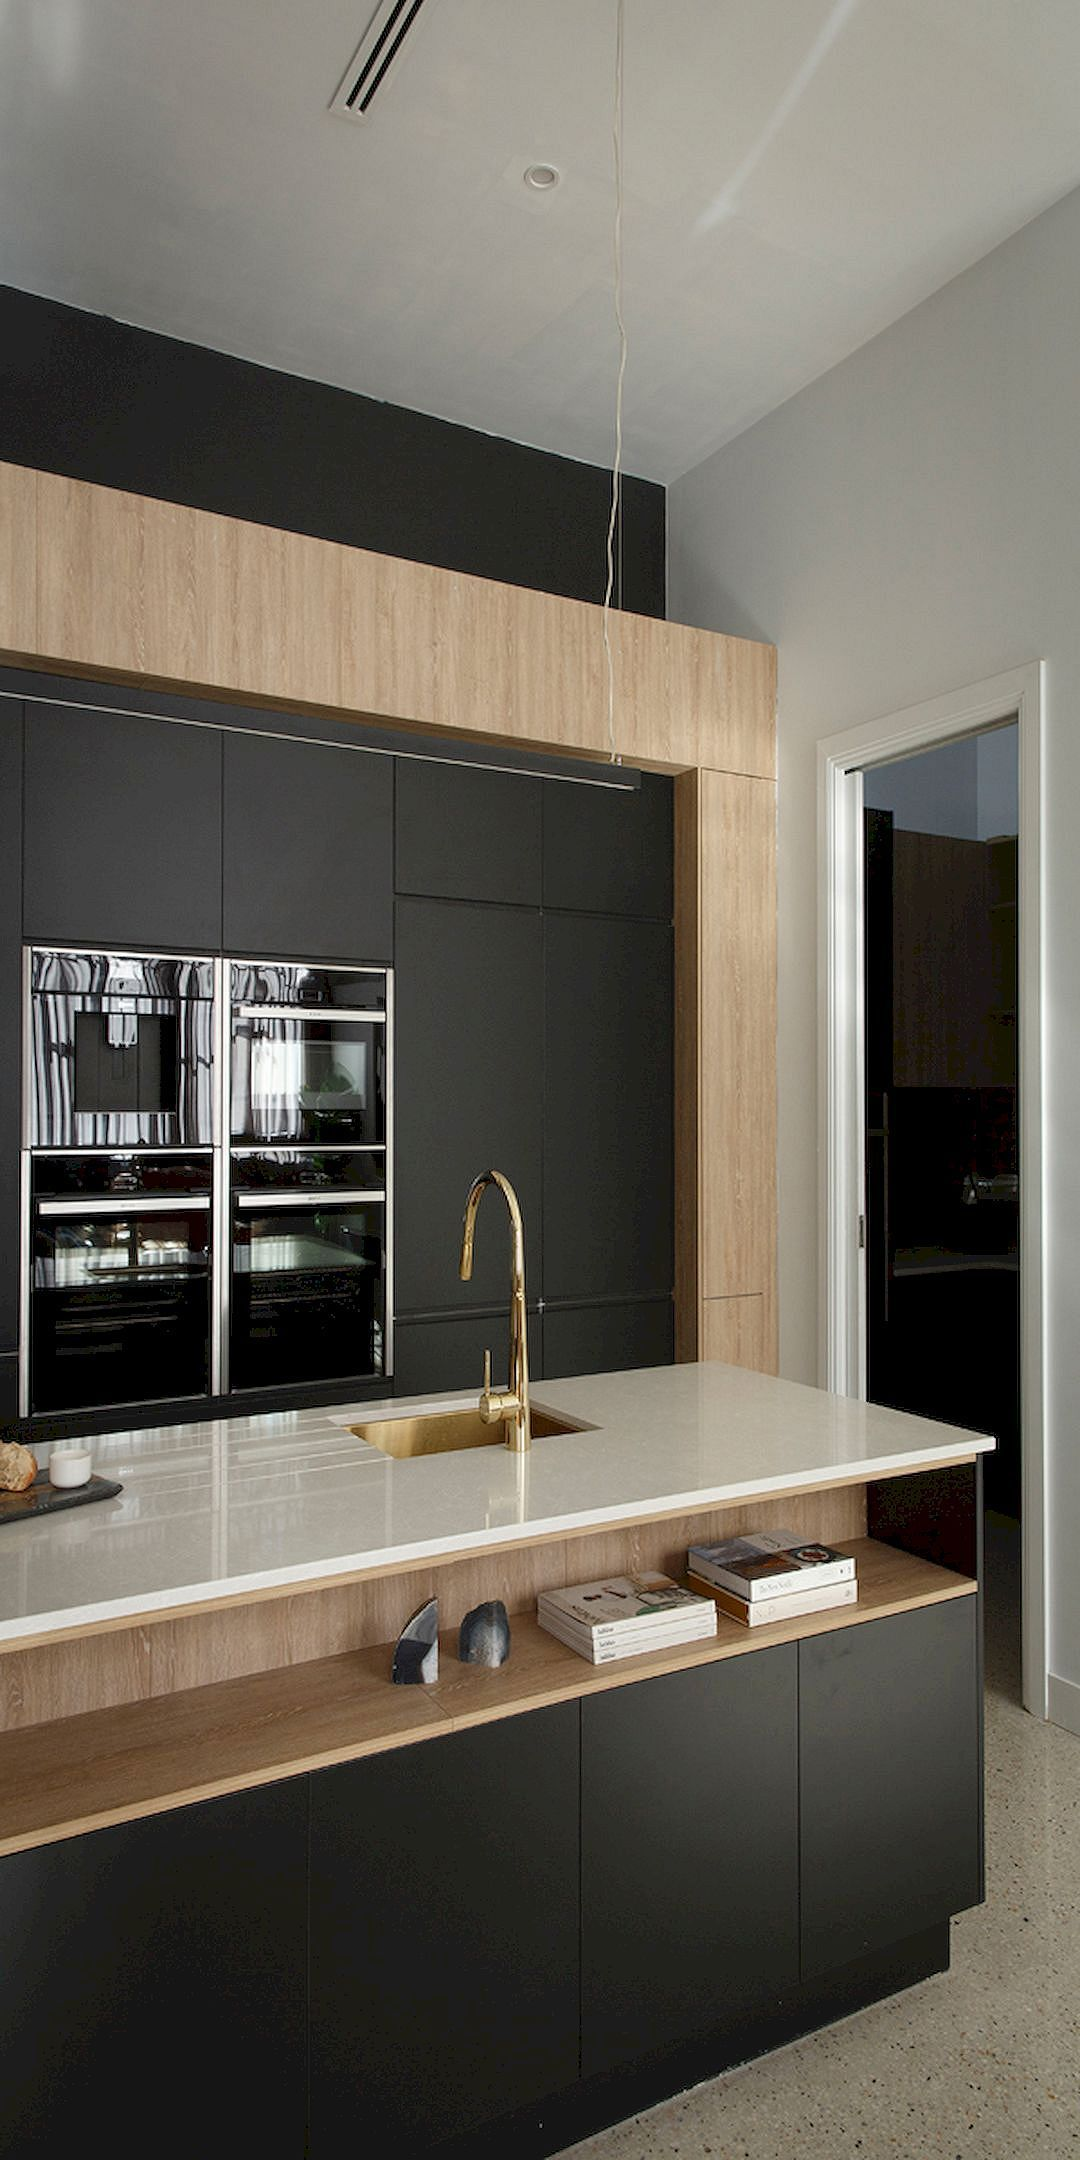 12 Nice Ideas For Your Modern Kitchen Design Architecture